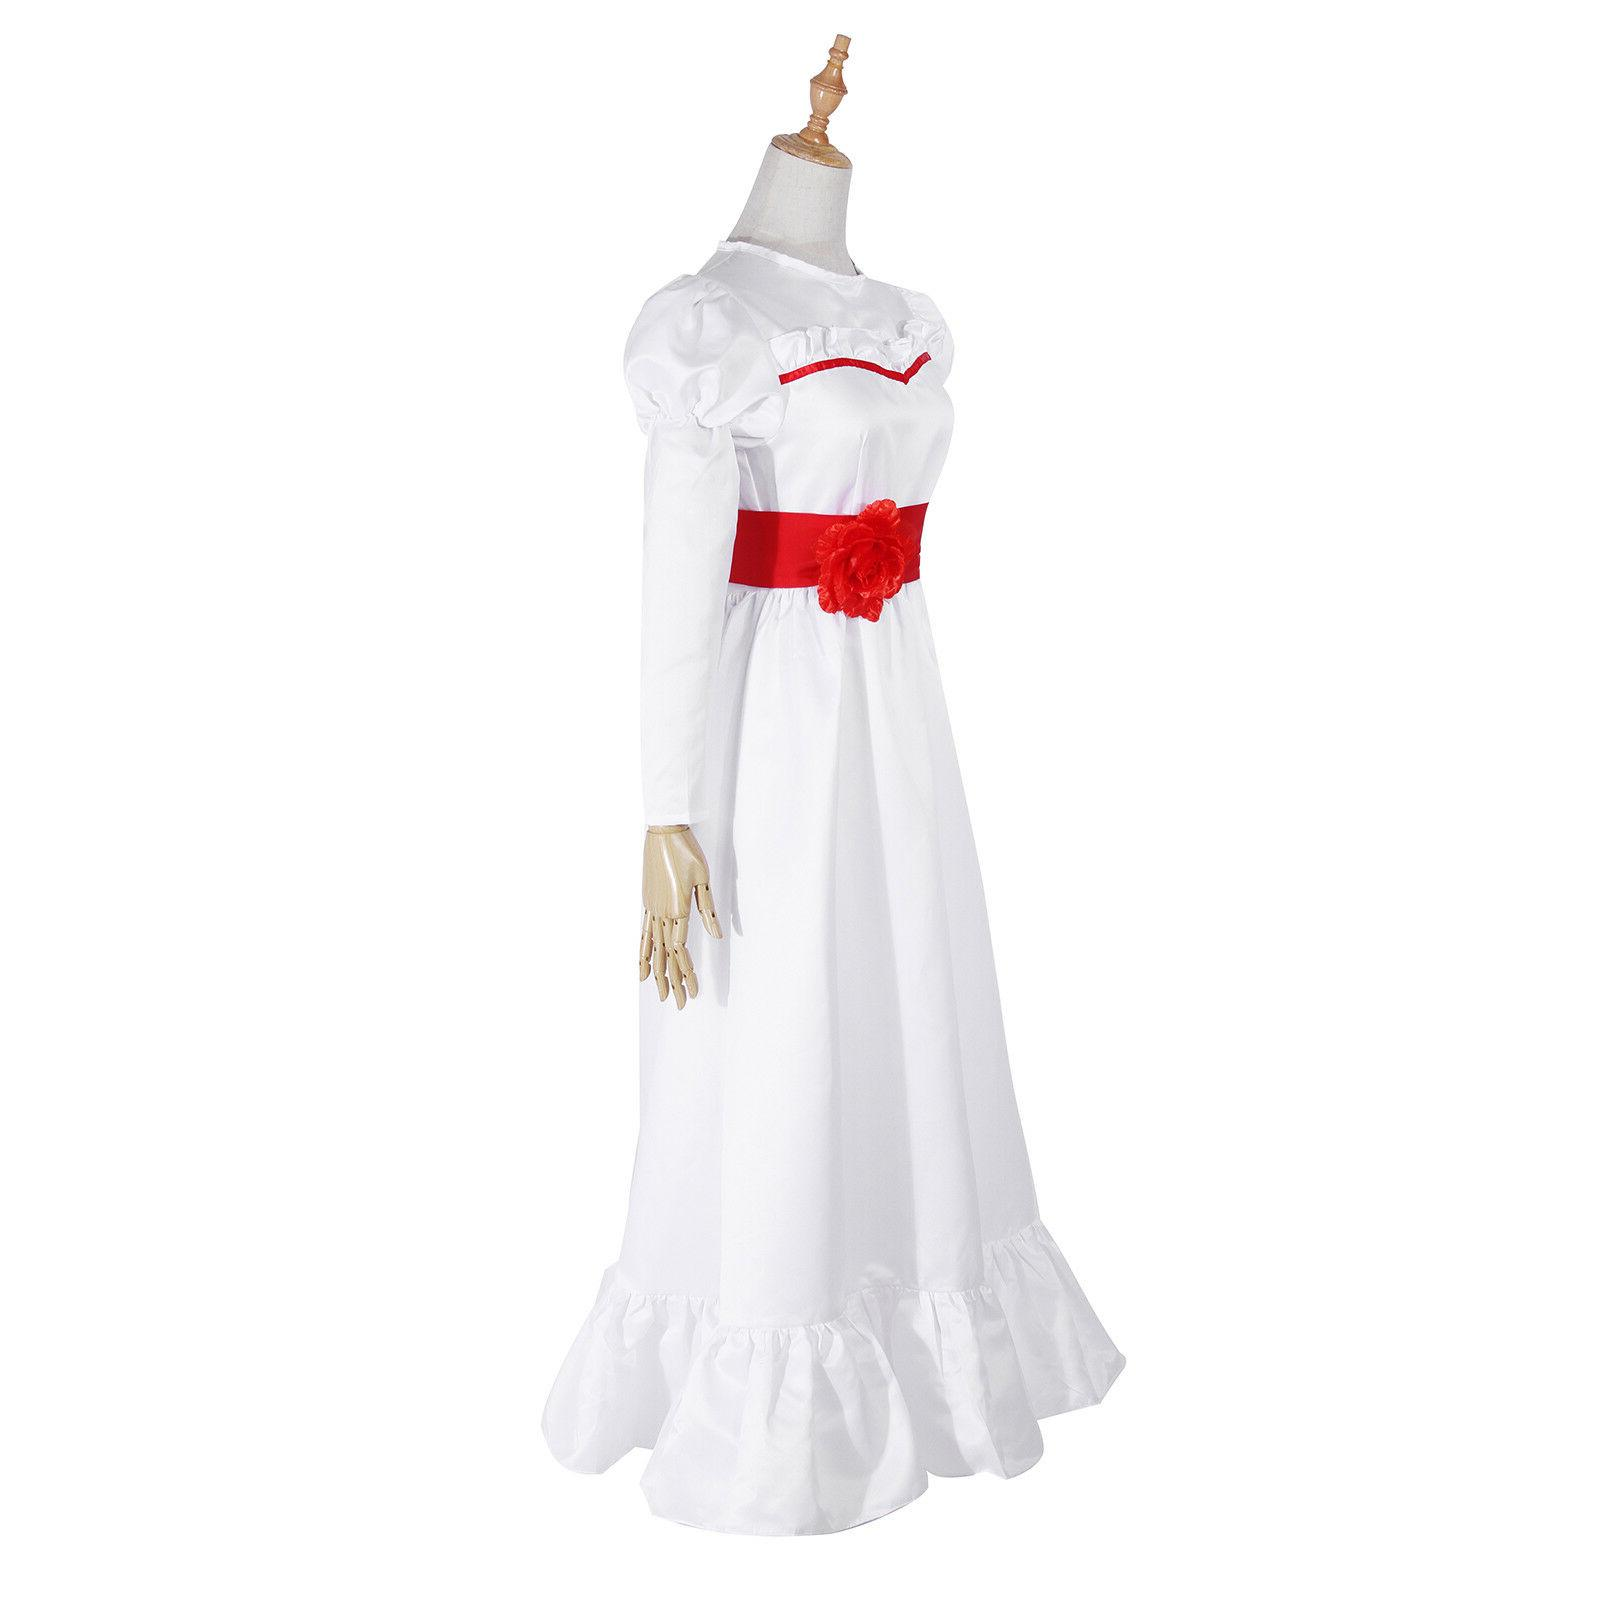 The Annabelle Cosplay Costume Long